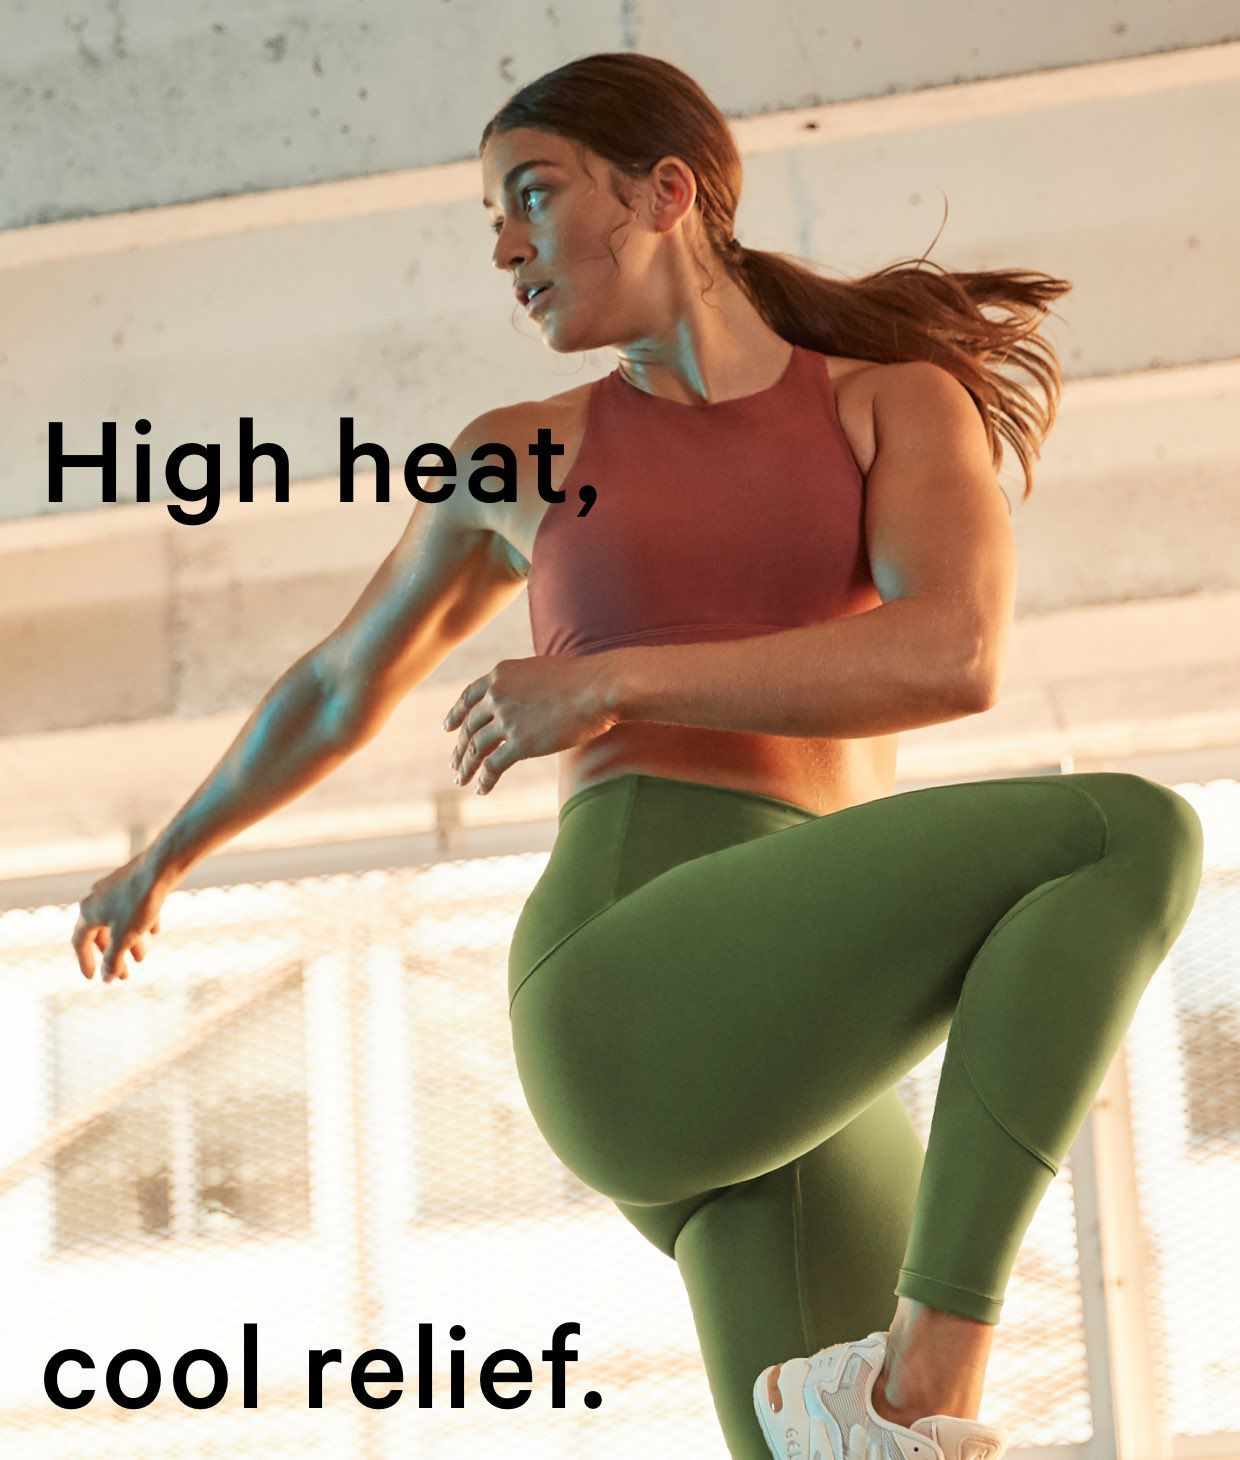 HIGH HEAT, COOL RELIEF